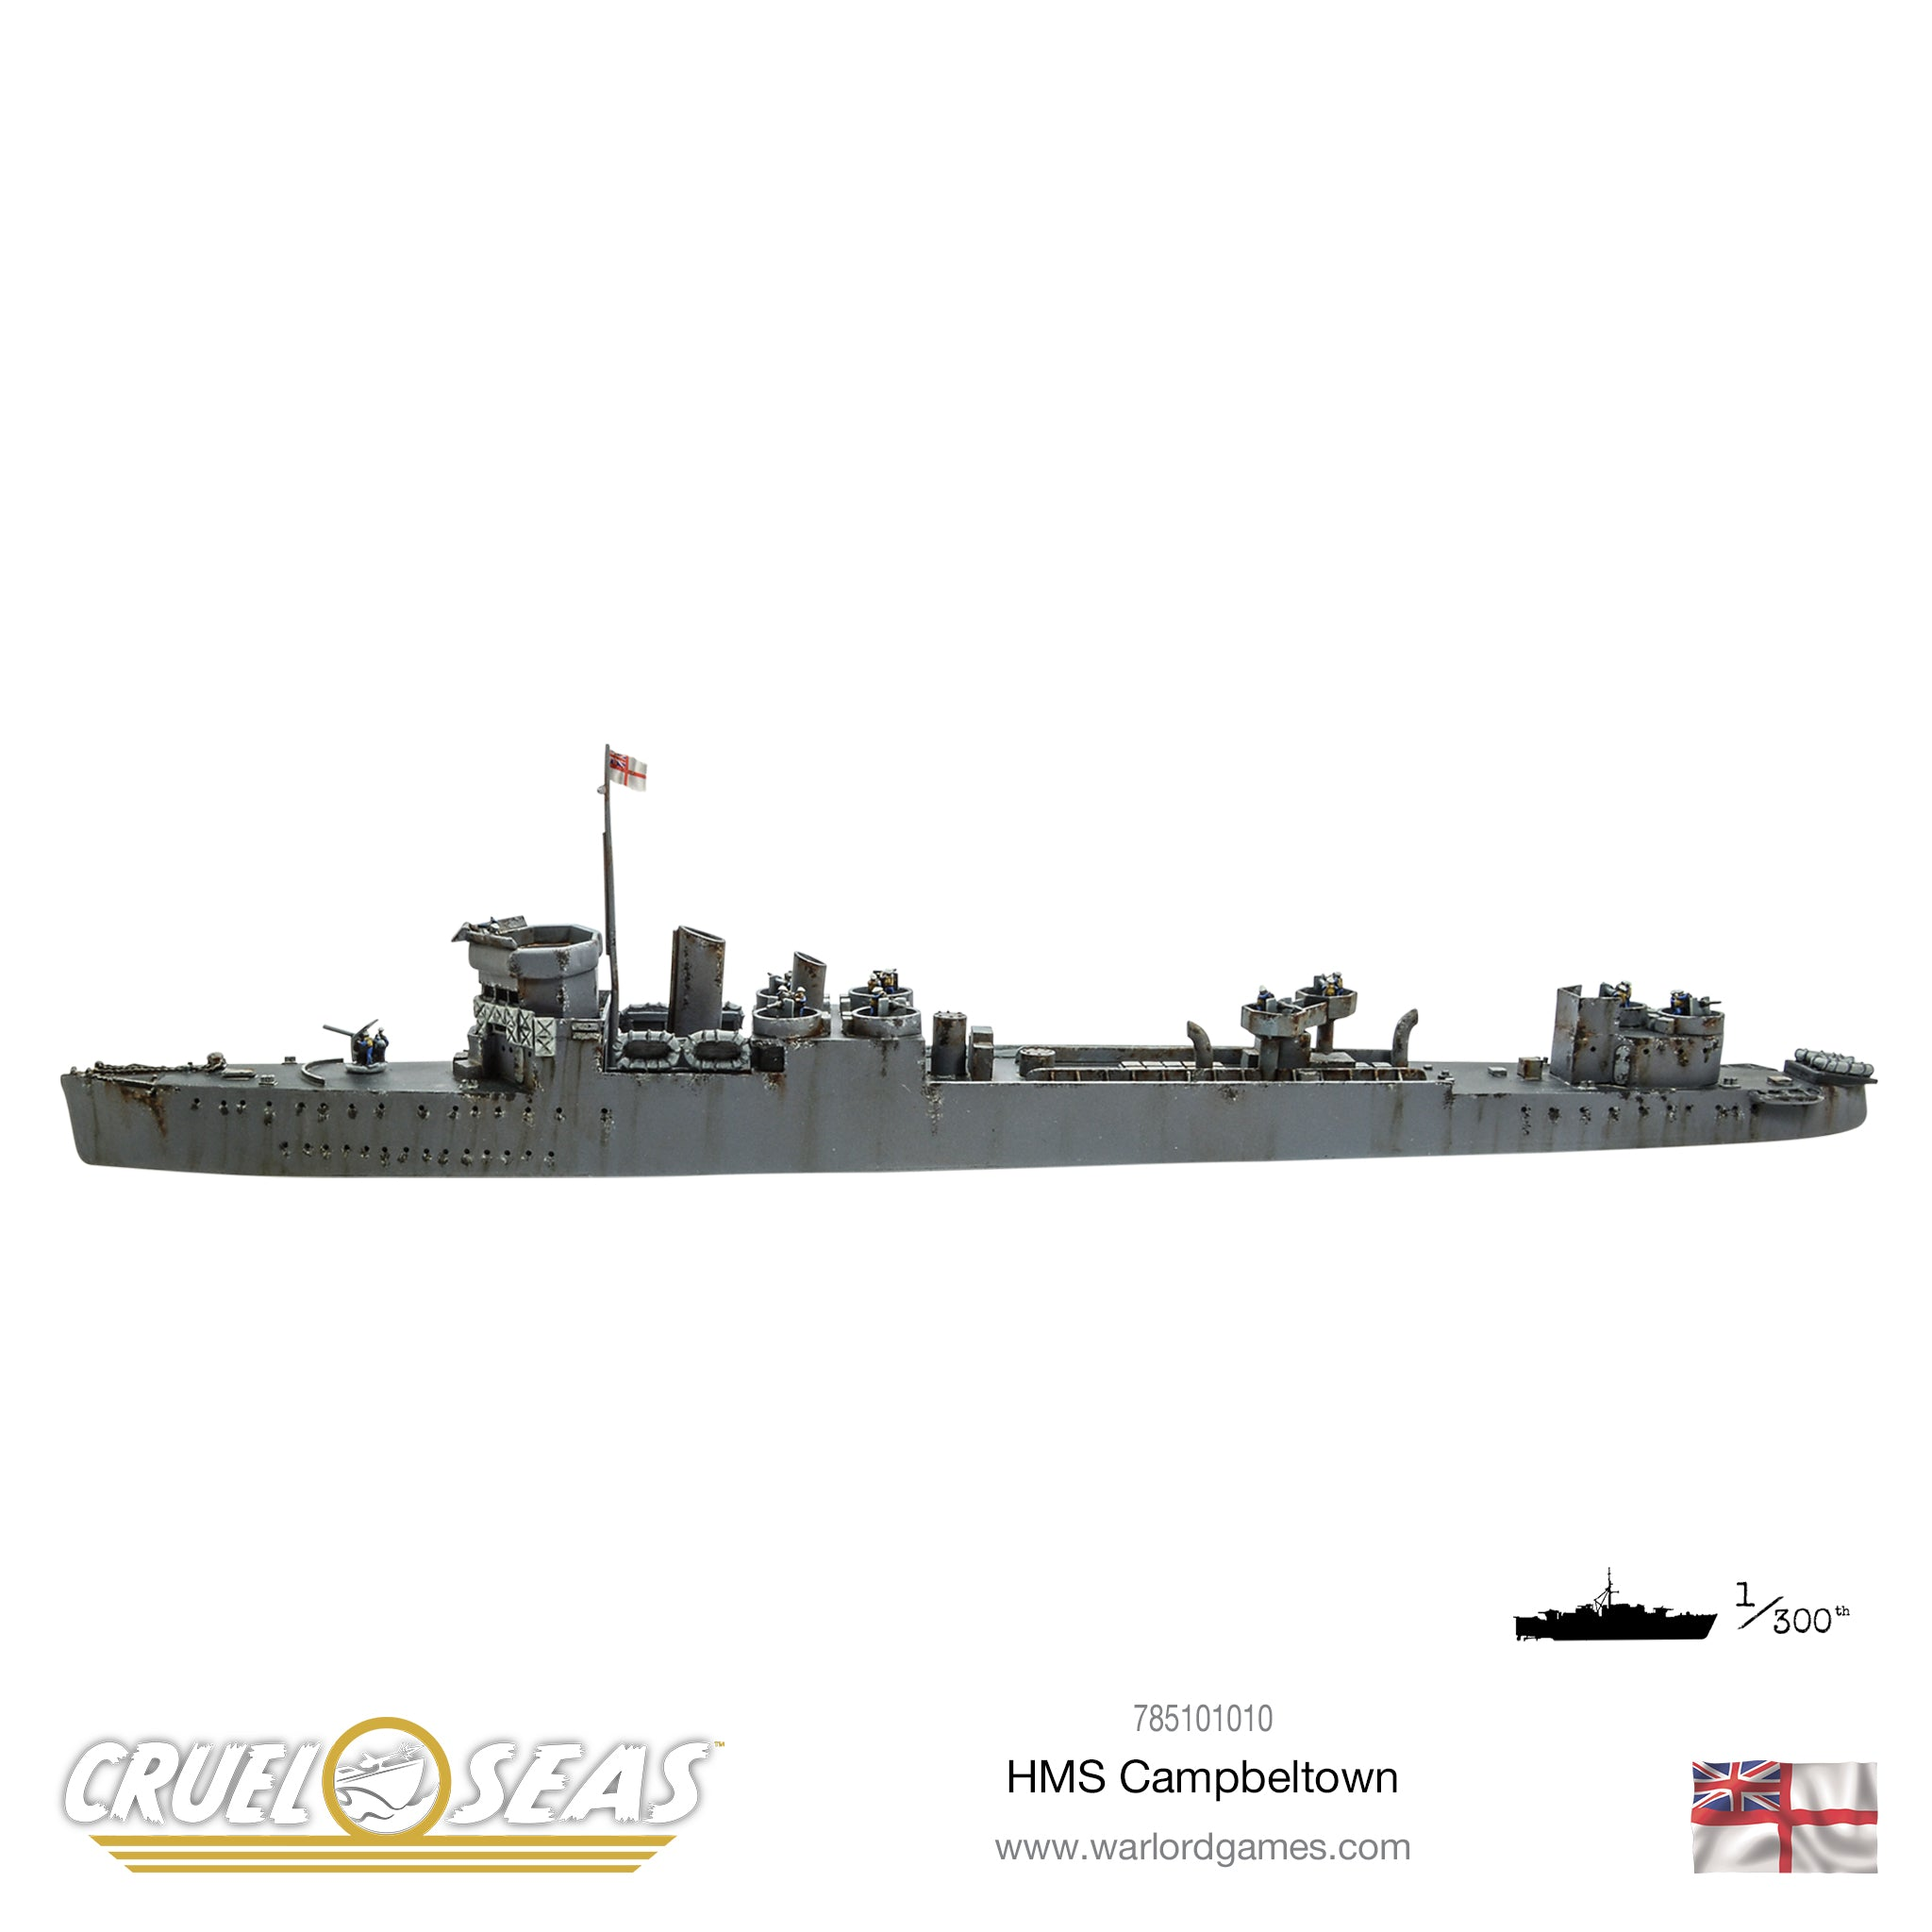 Cruel Seas: HMS Campbeltown